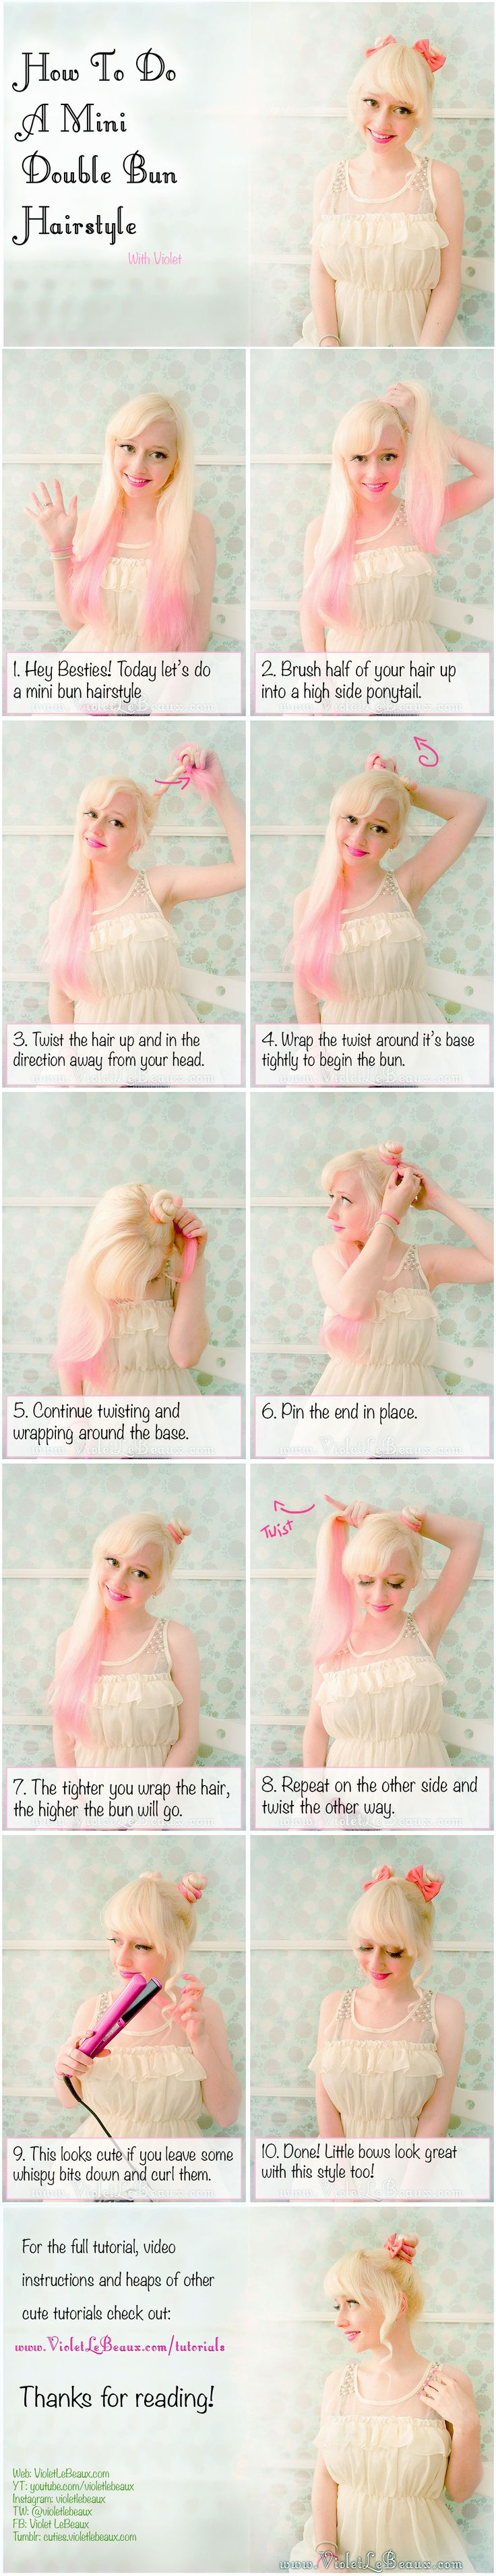 Mini Double Bun Hairstyle Tutorial | Violet LeBeaux- Cute Free Craft Tutorials